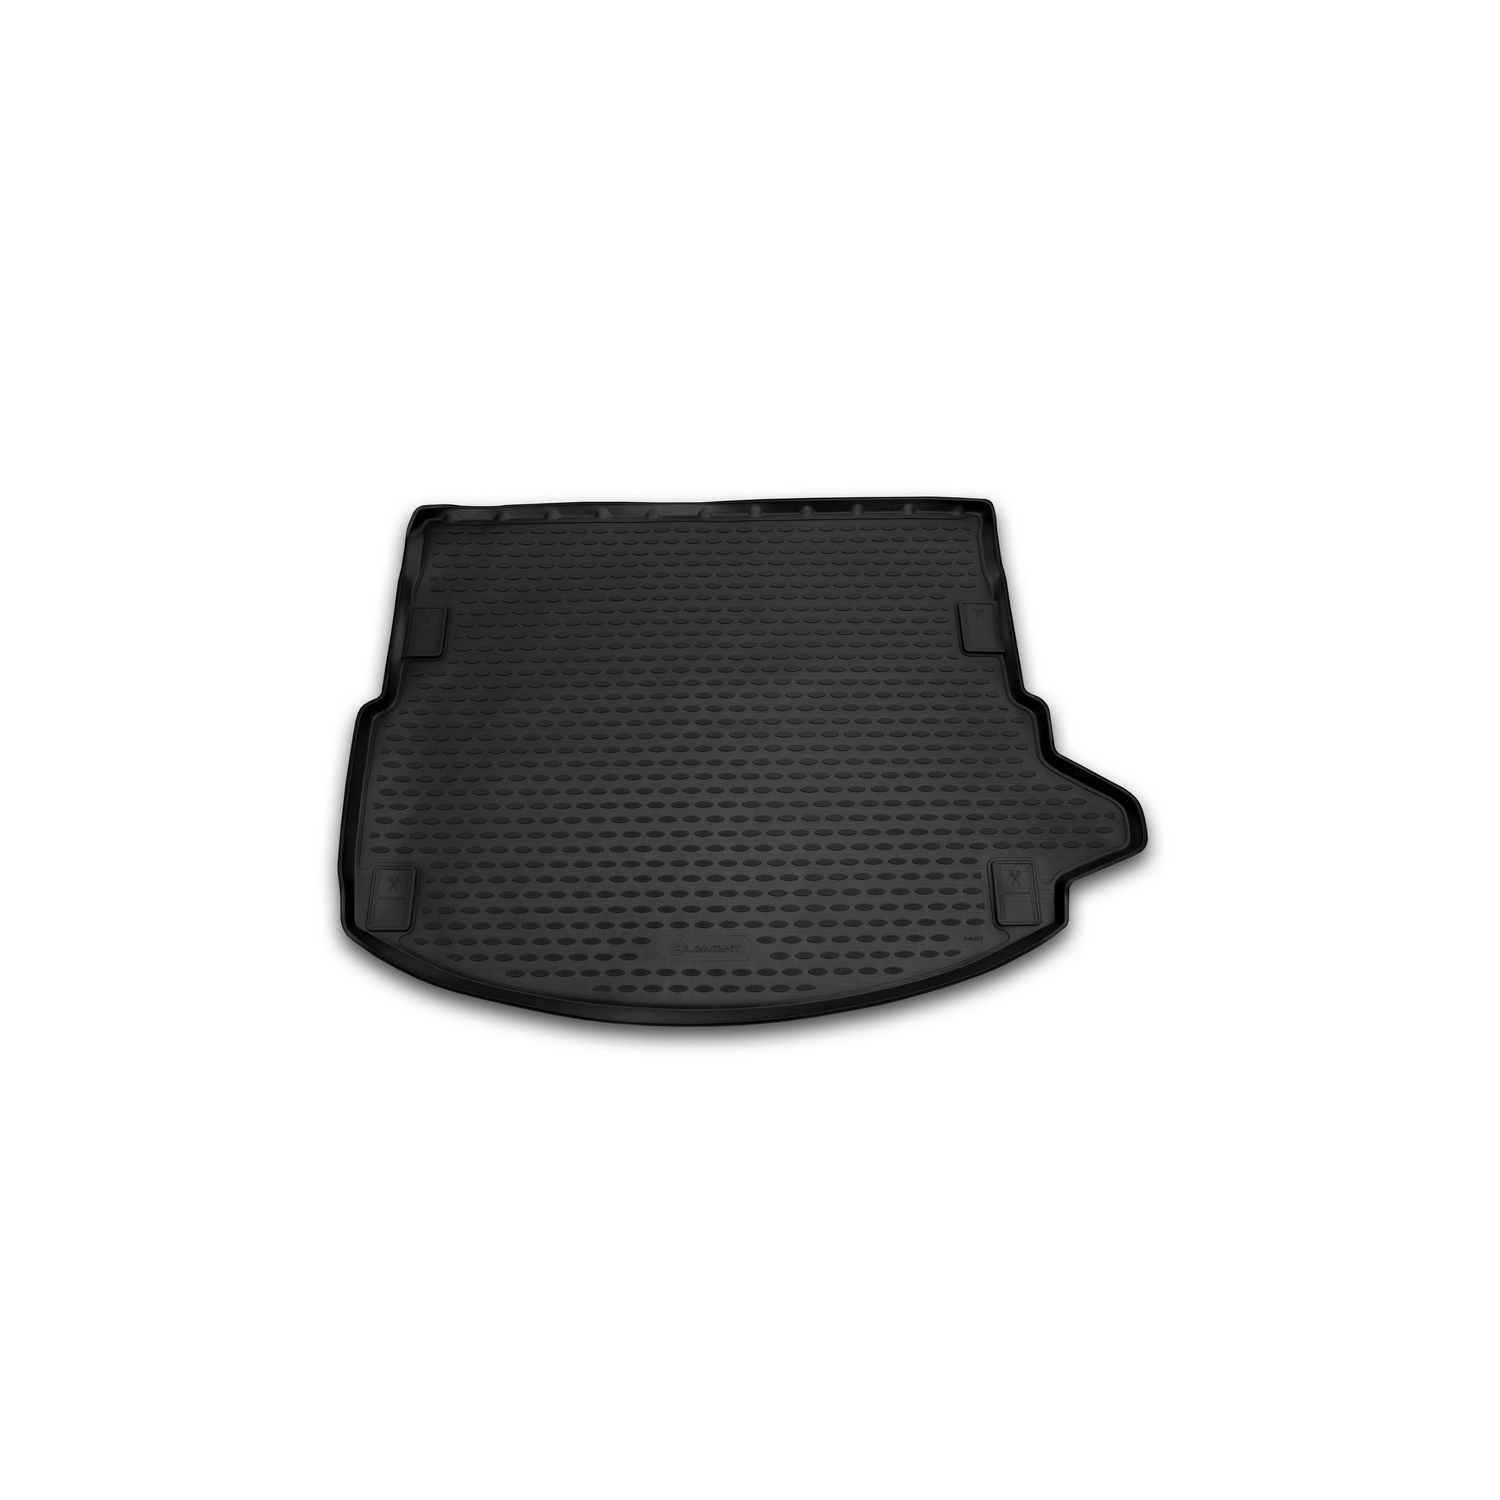 Trunk Mat For LAND ROVER Discovery Sport 2014-, 5, NLC.28.17.B13